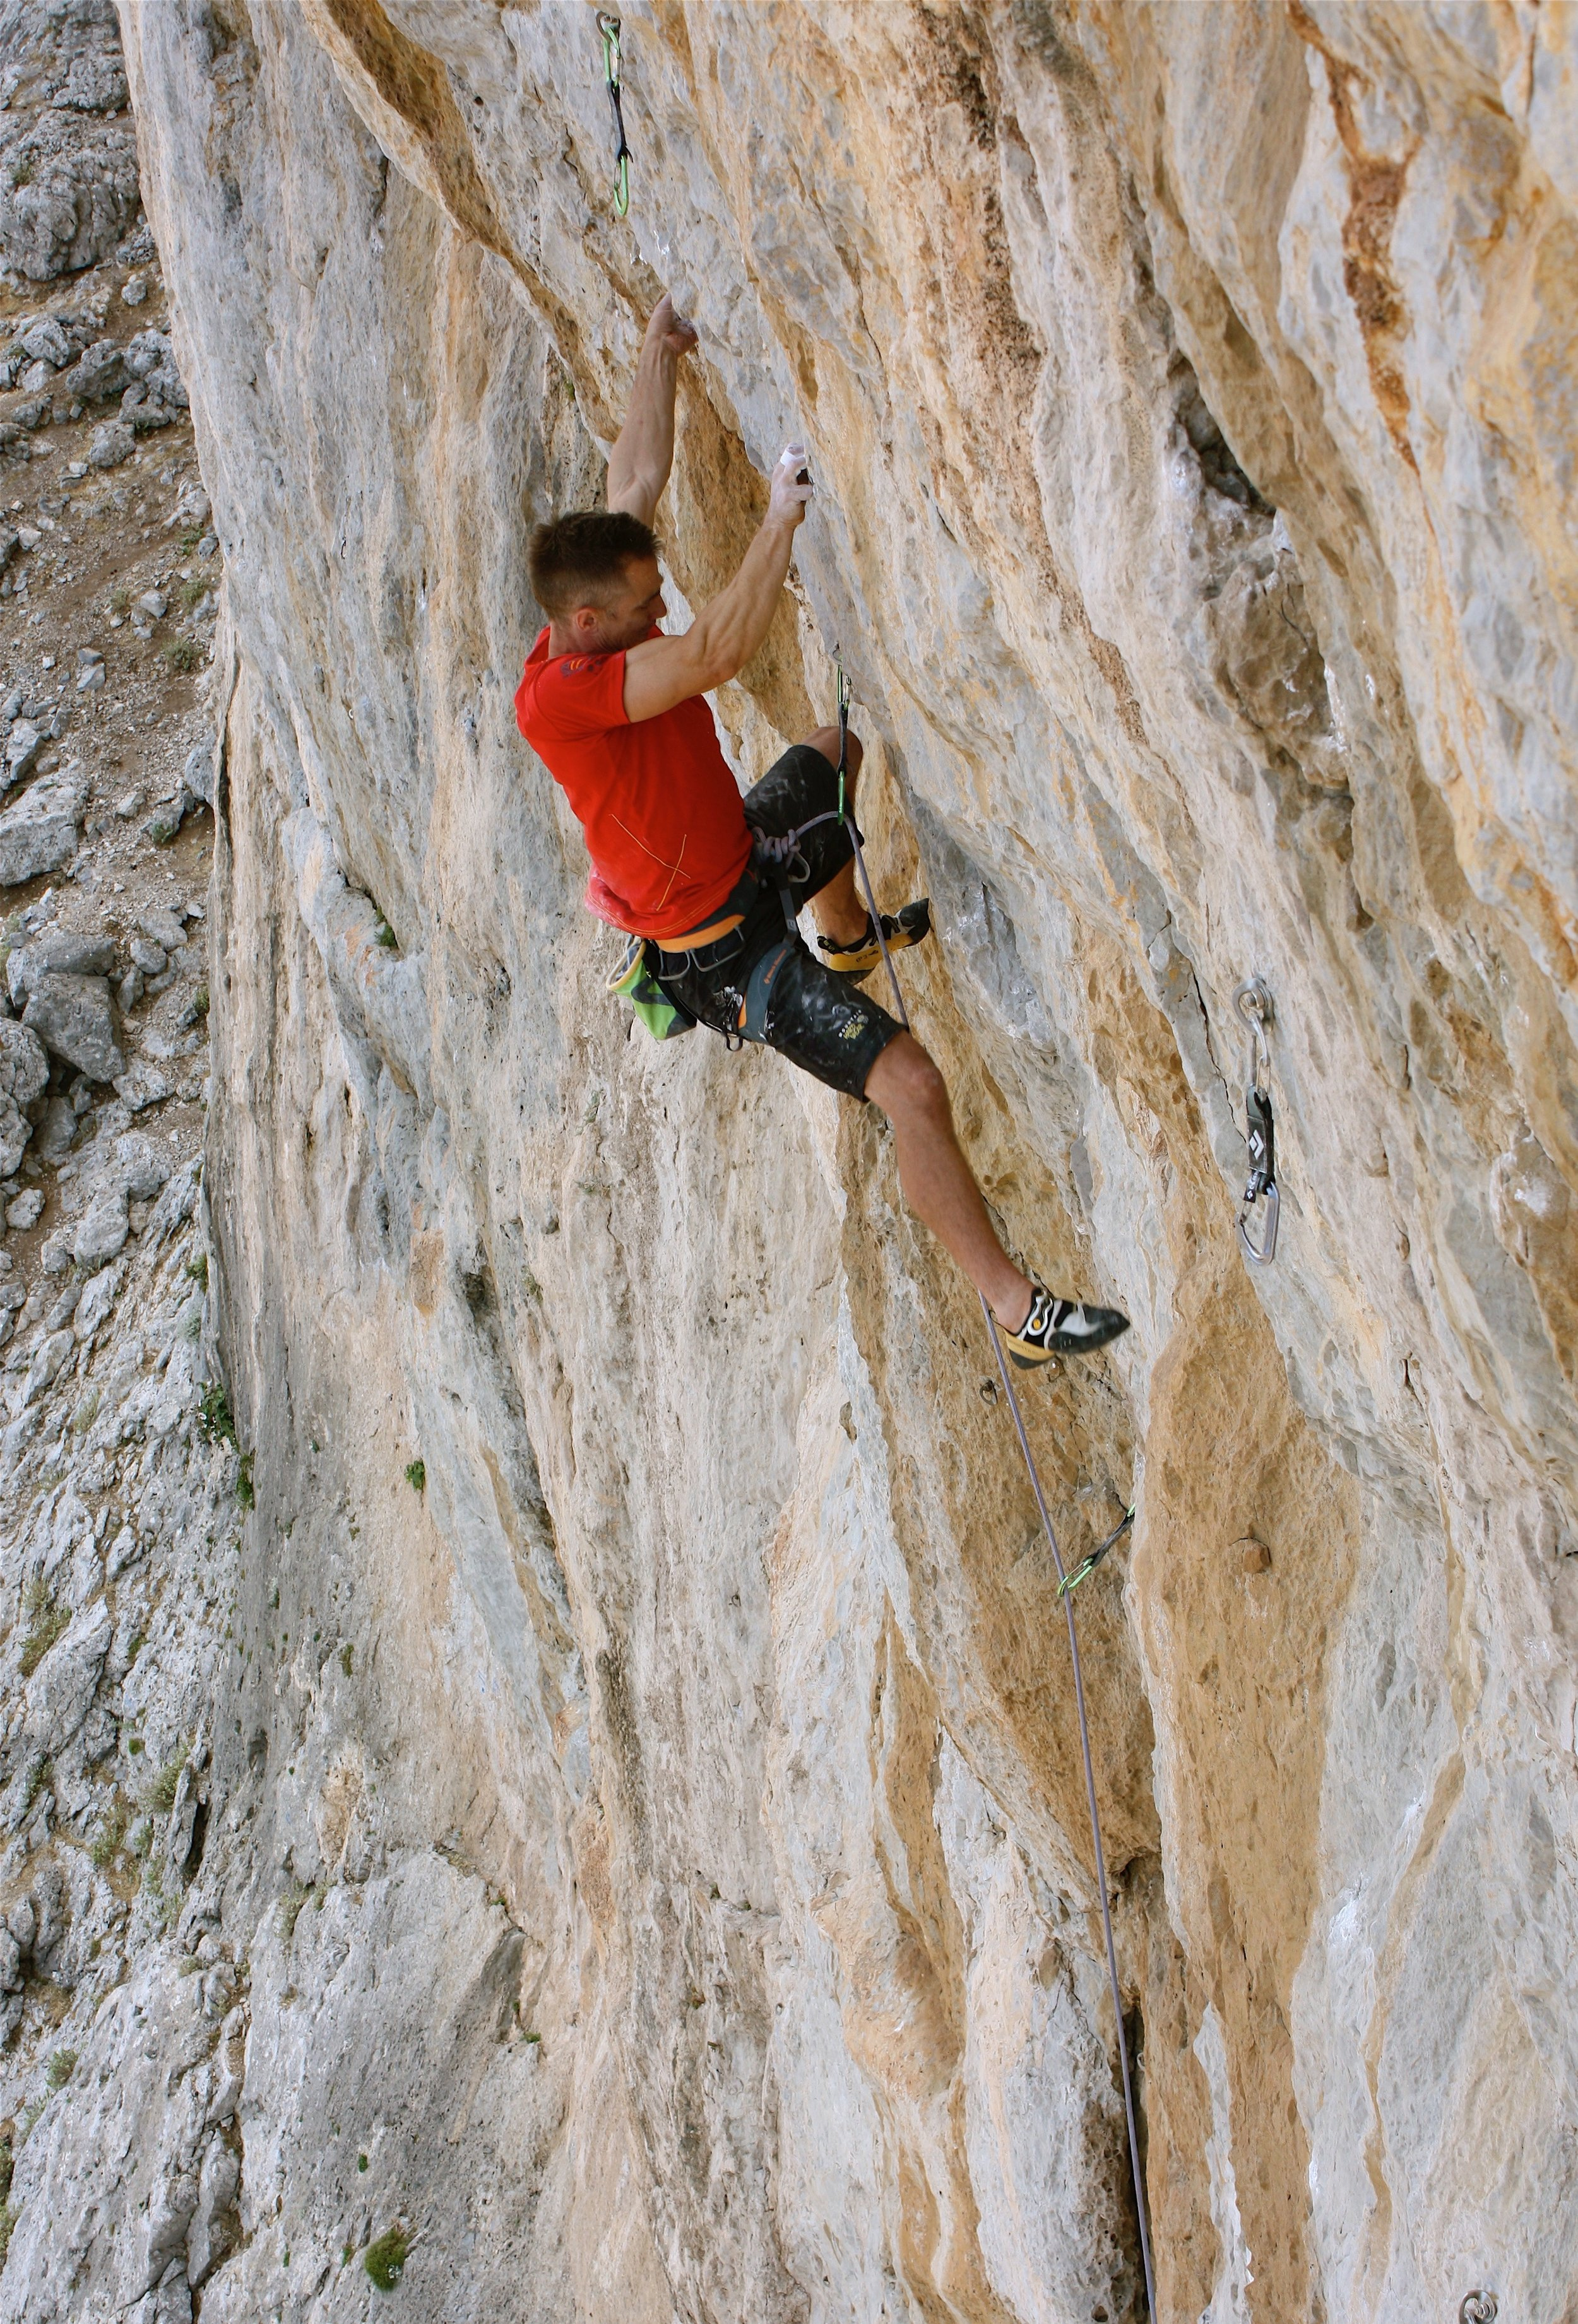 Broken Souls 7c, Lower Spartan Wall, Kalymnos.  Photo: Selina Chen